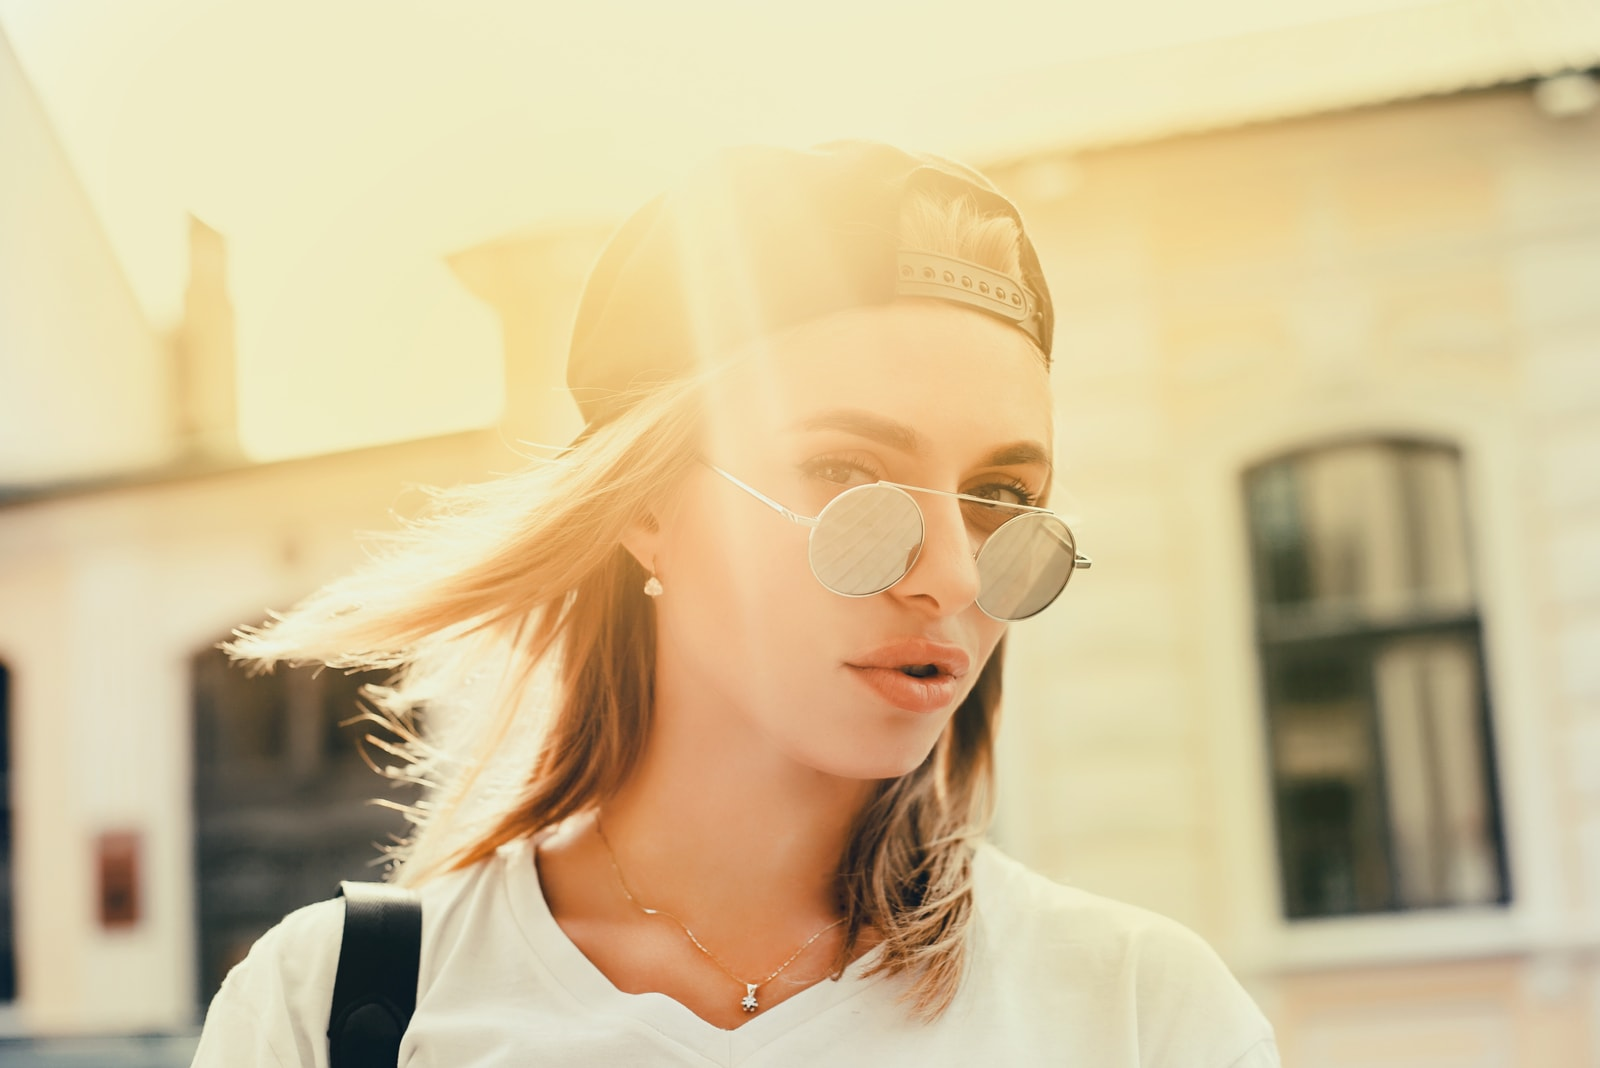 a portrait of a beautiful girl with a cap and sunglasses